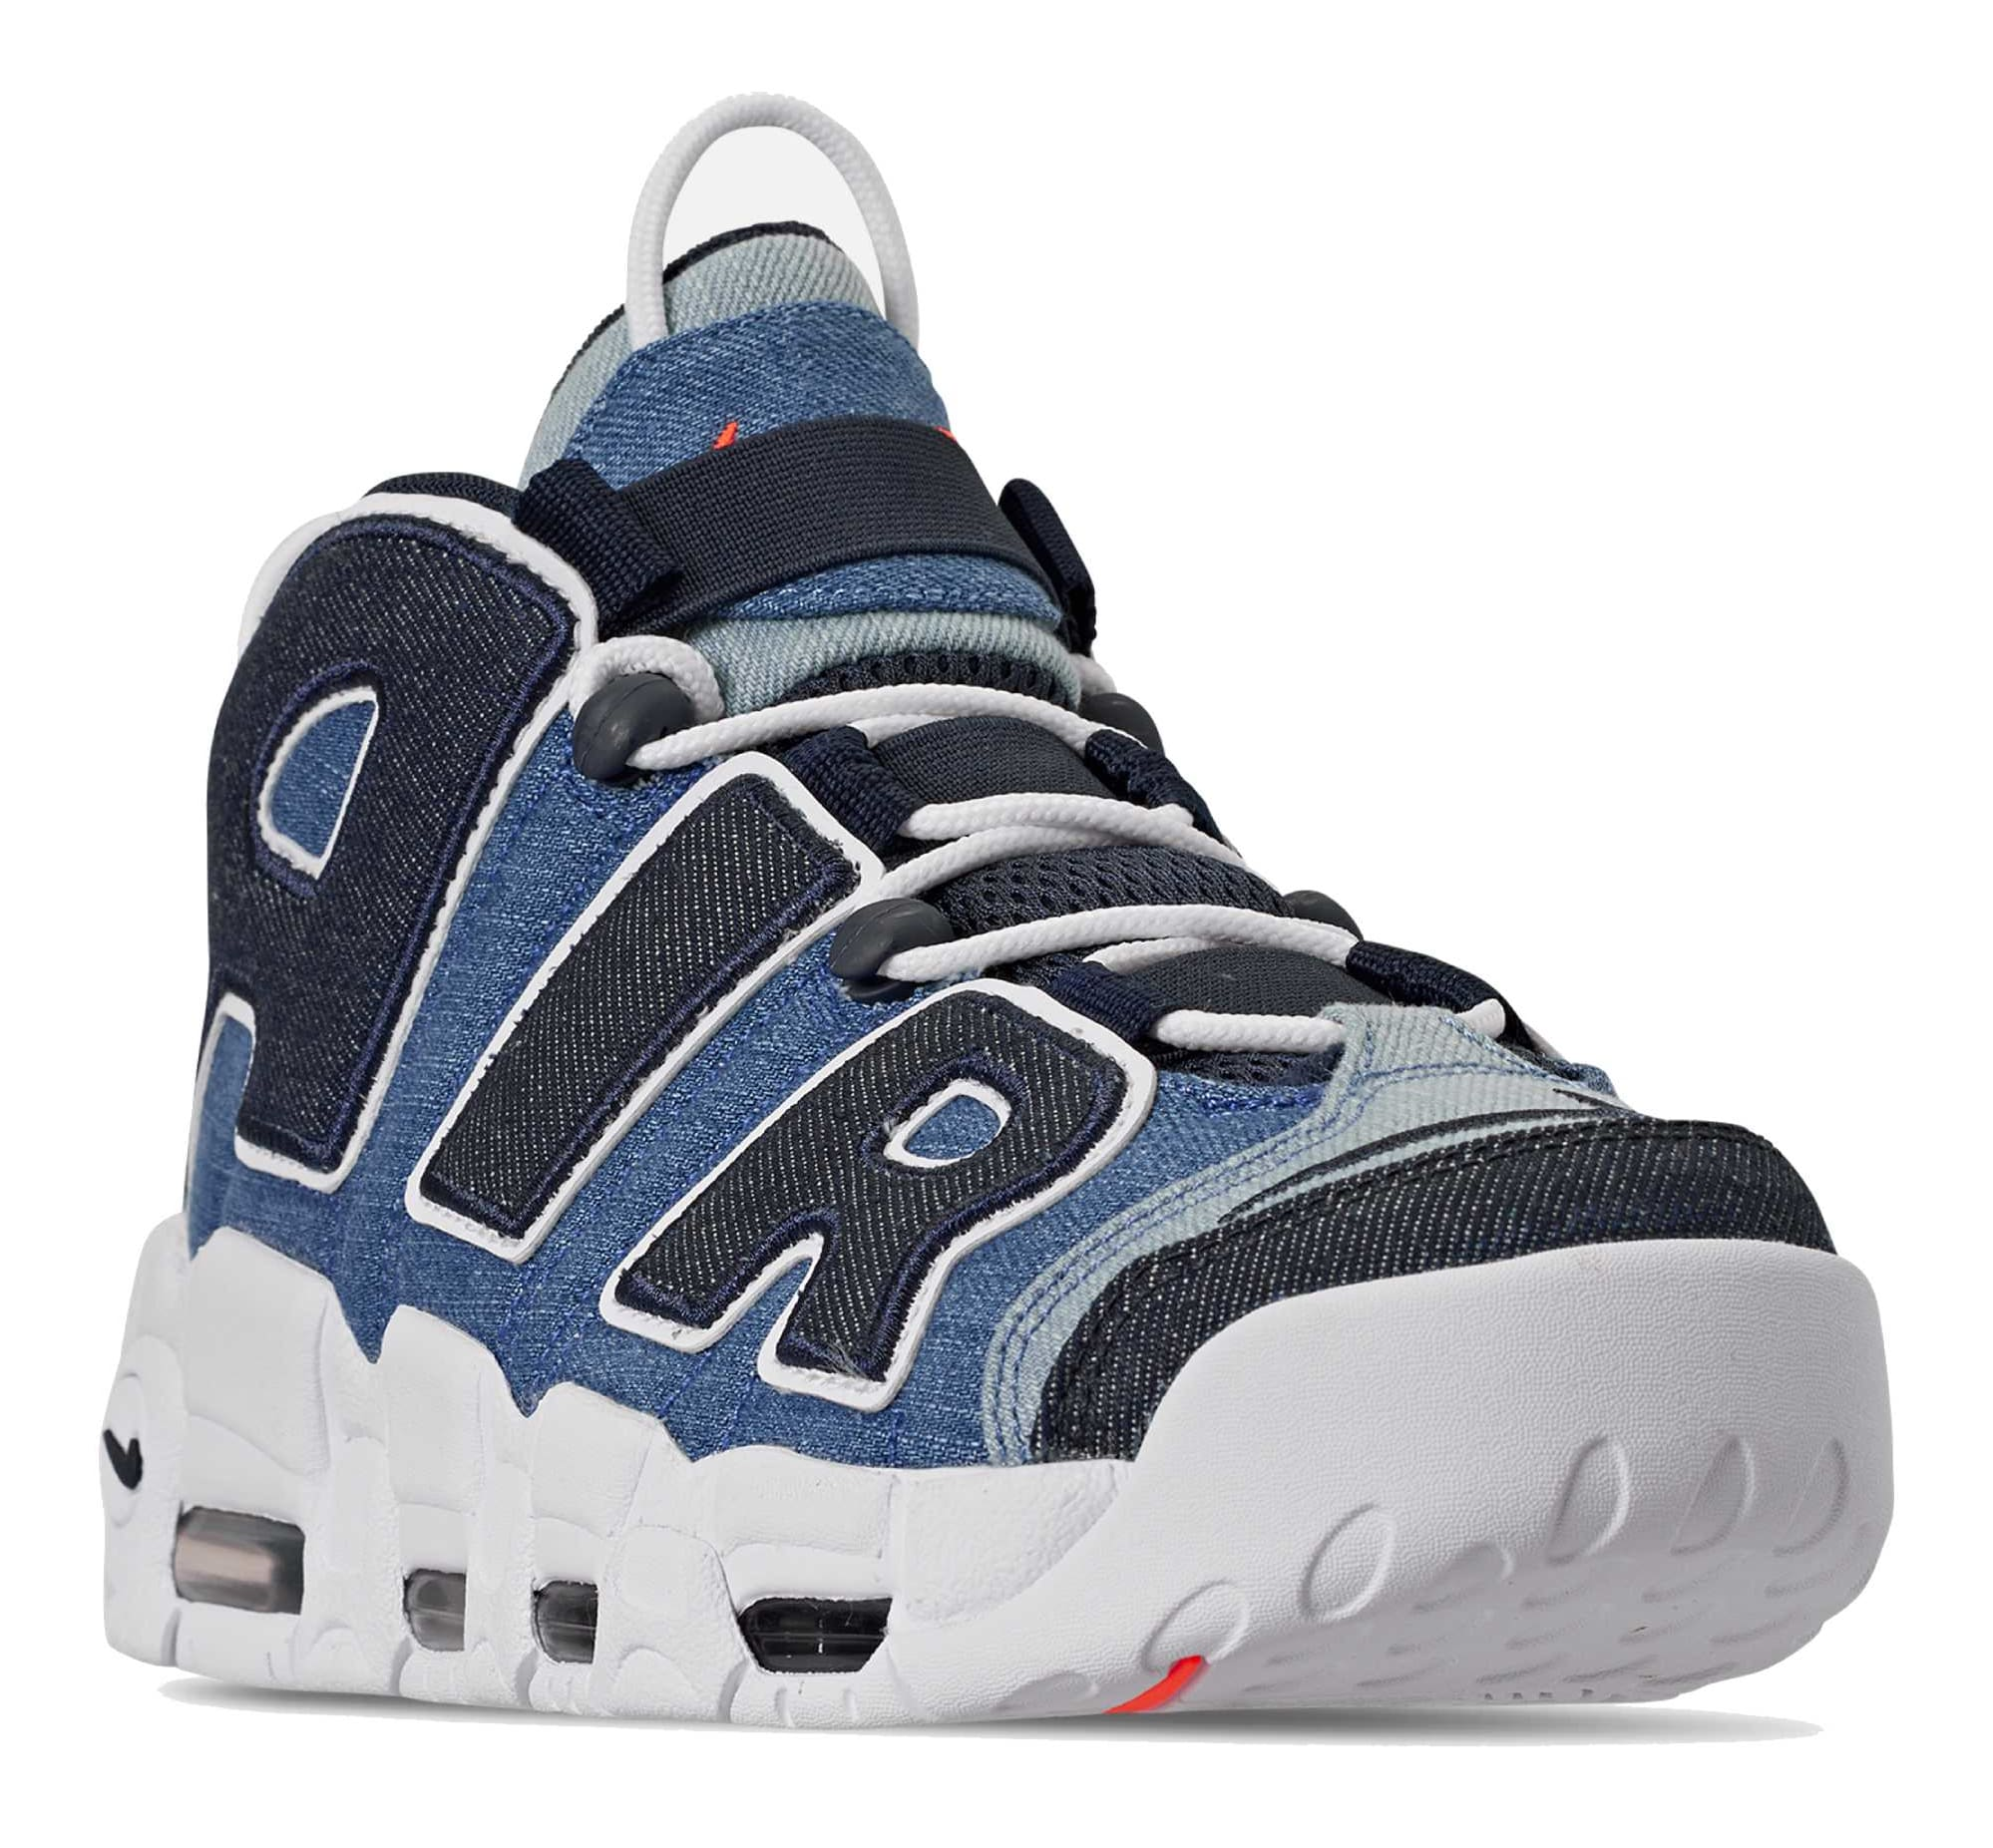 Nike Air More Uptempo Denim Data de Lançamento CJ6125-100